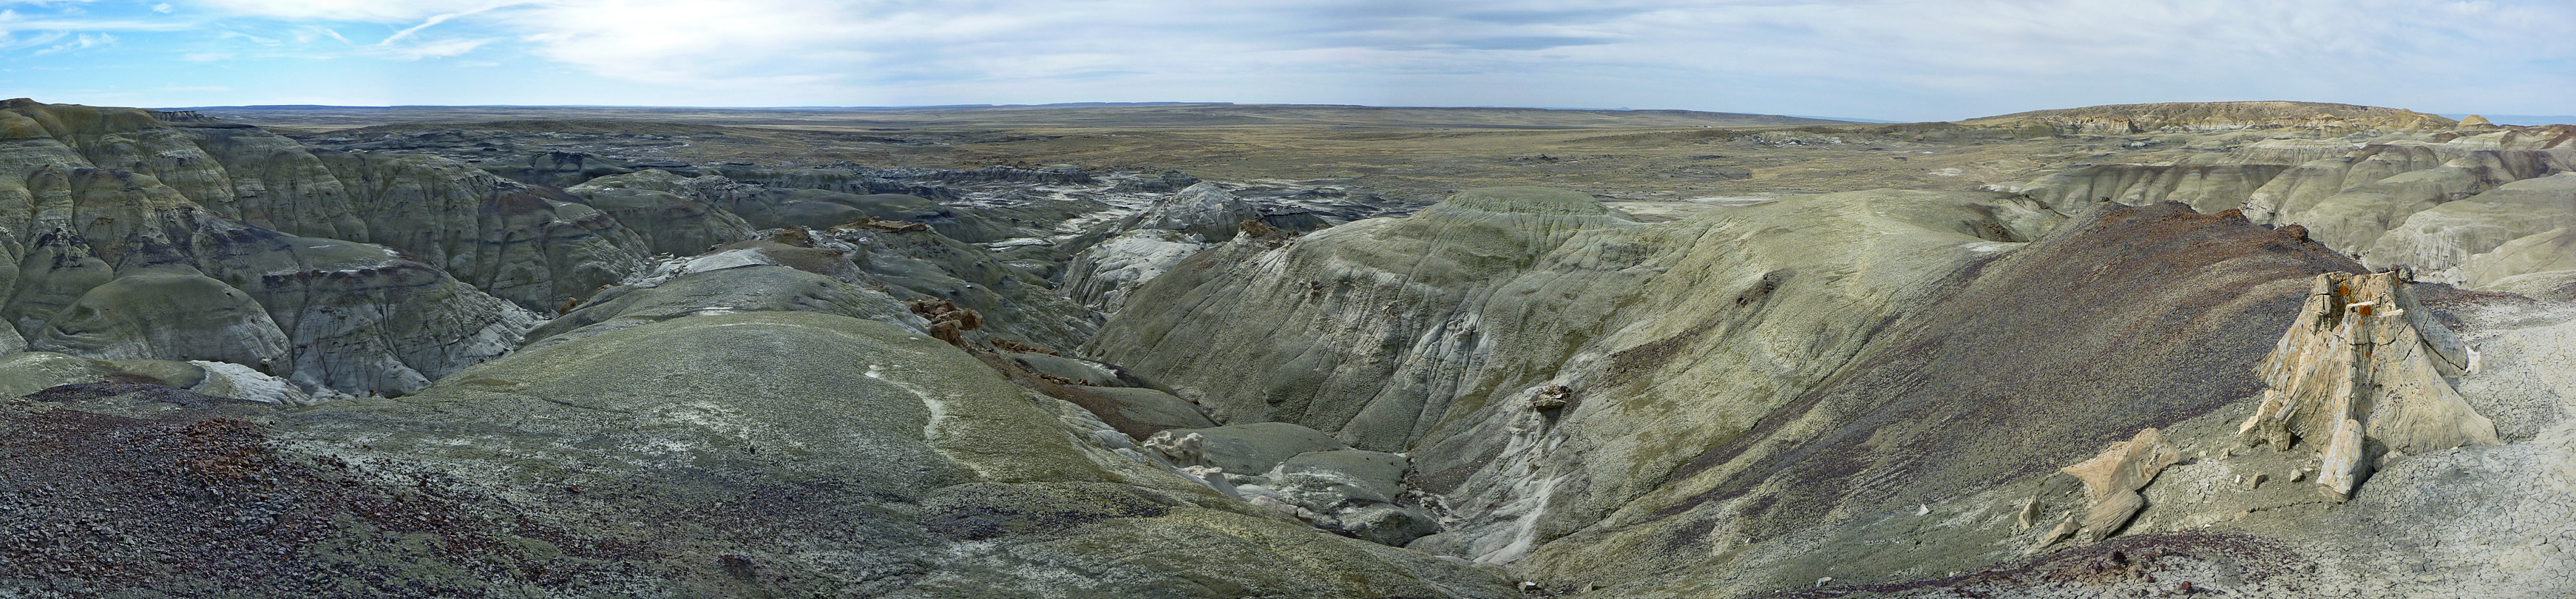 Panorama of the badlands